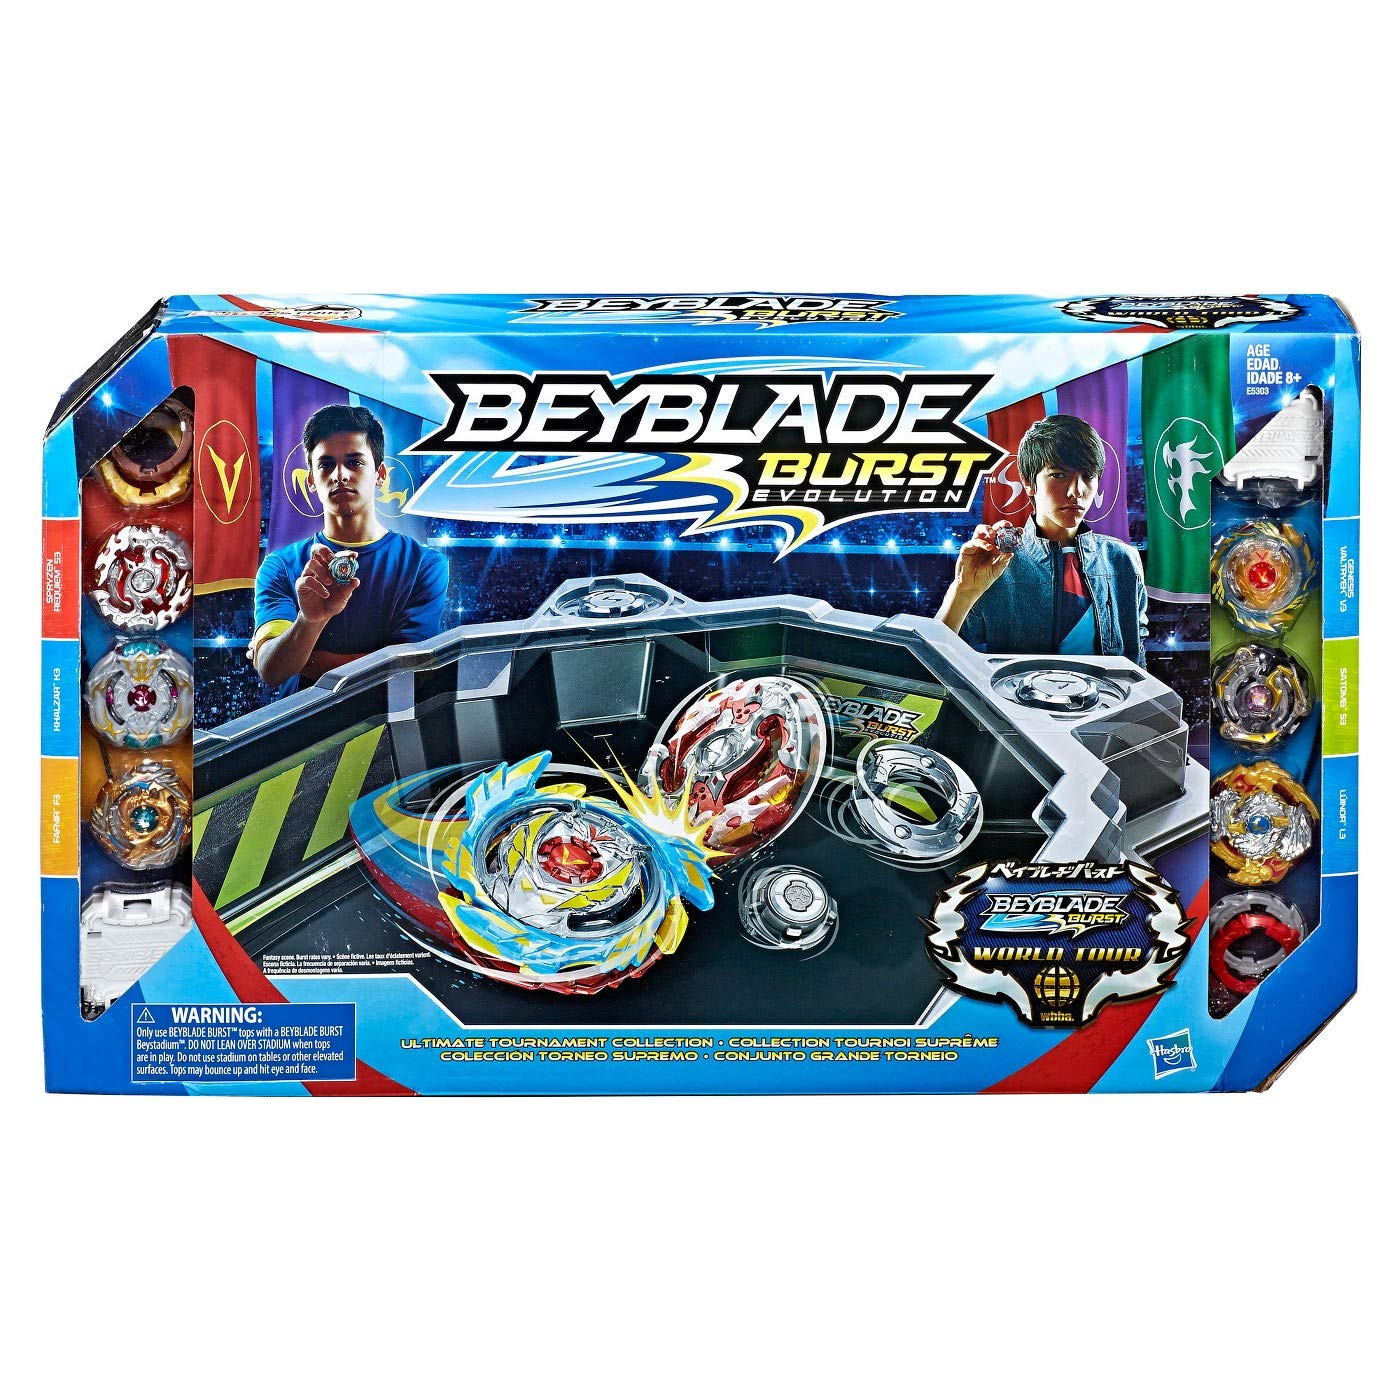 Beyblade Burst Evolution Ultimate Tournament Collection Tops and Beystadium